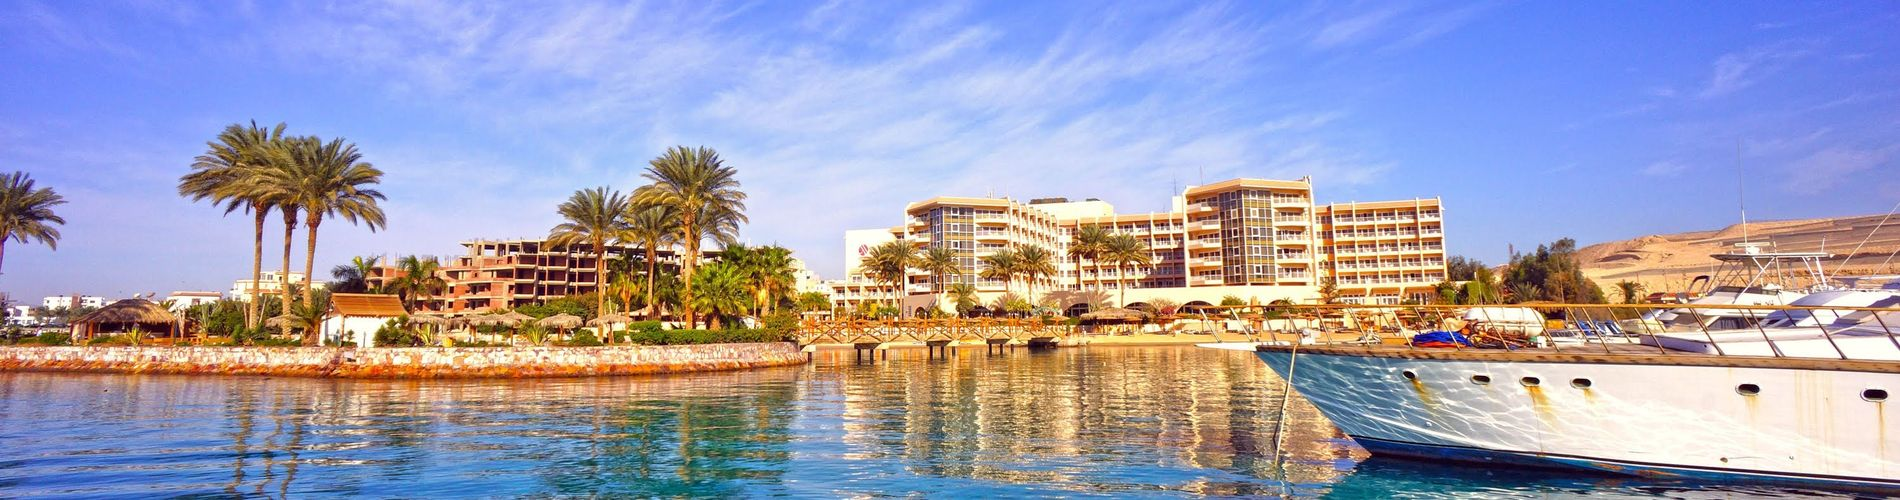 Real Estate in Hurghada - Egypt